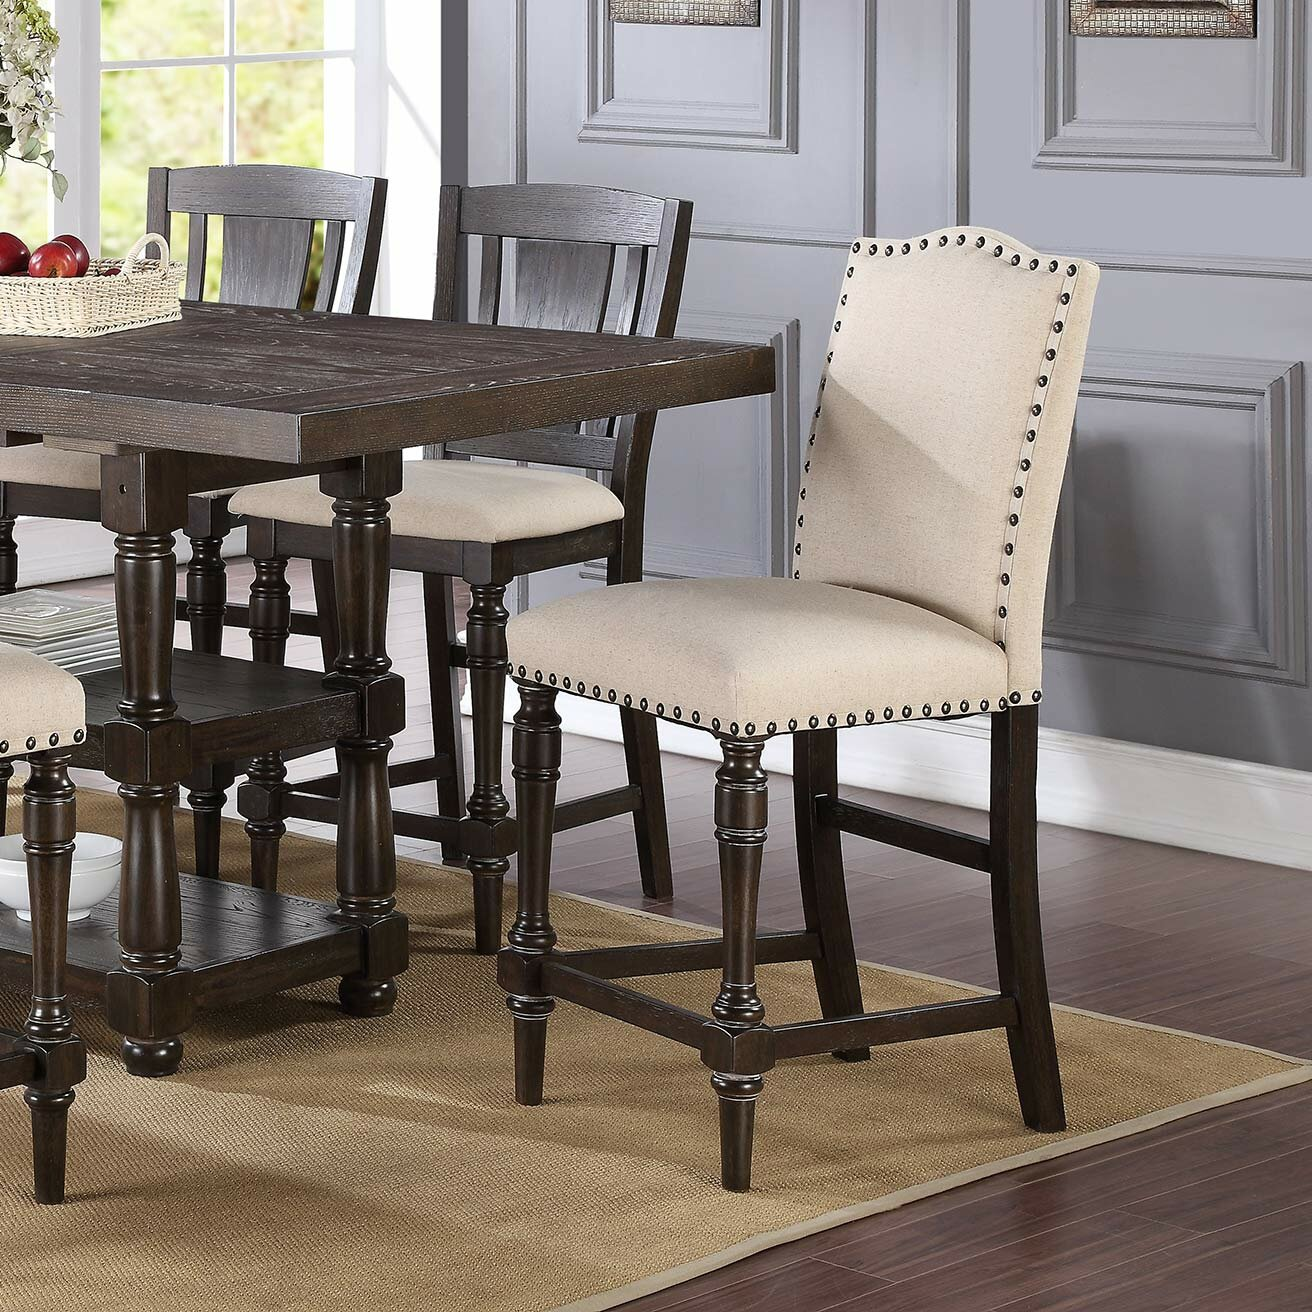 Dining Sets For 6: Laurel Foundry Modern Farmhouse Fortunat 6 Piece Counter